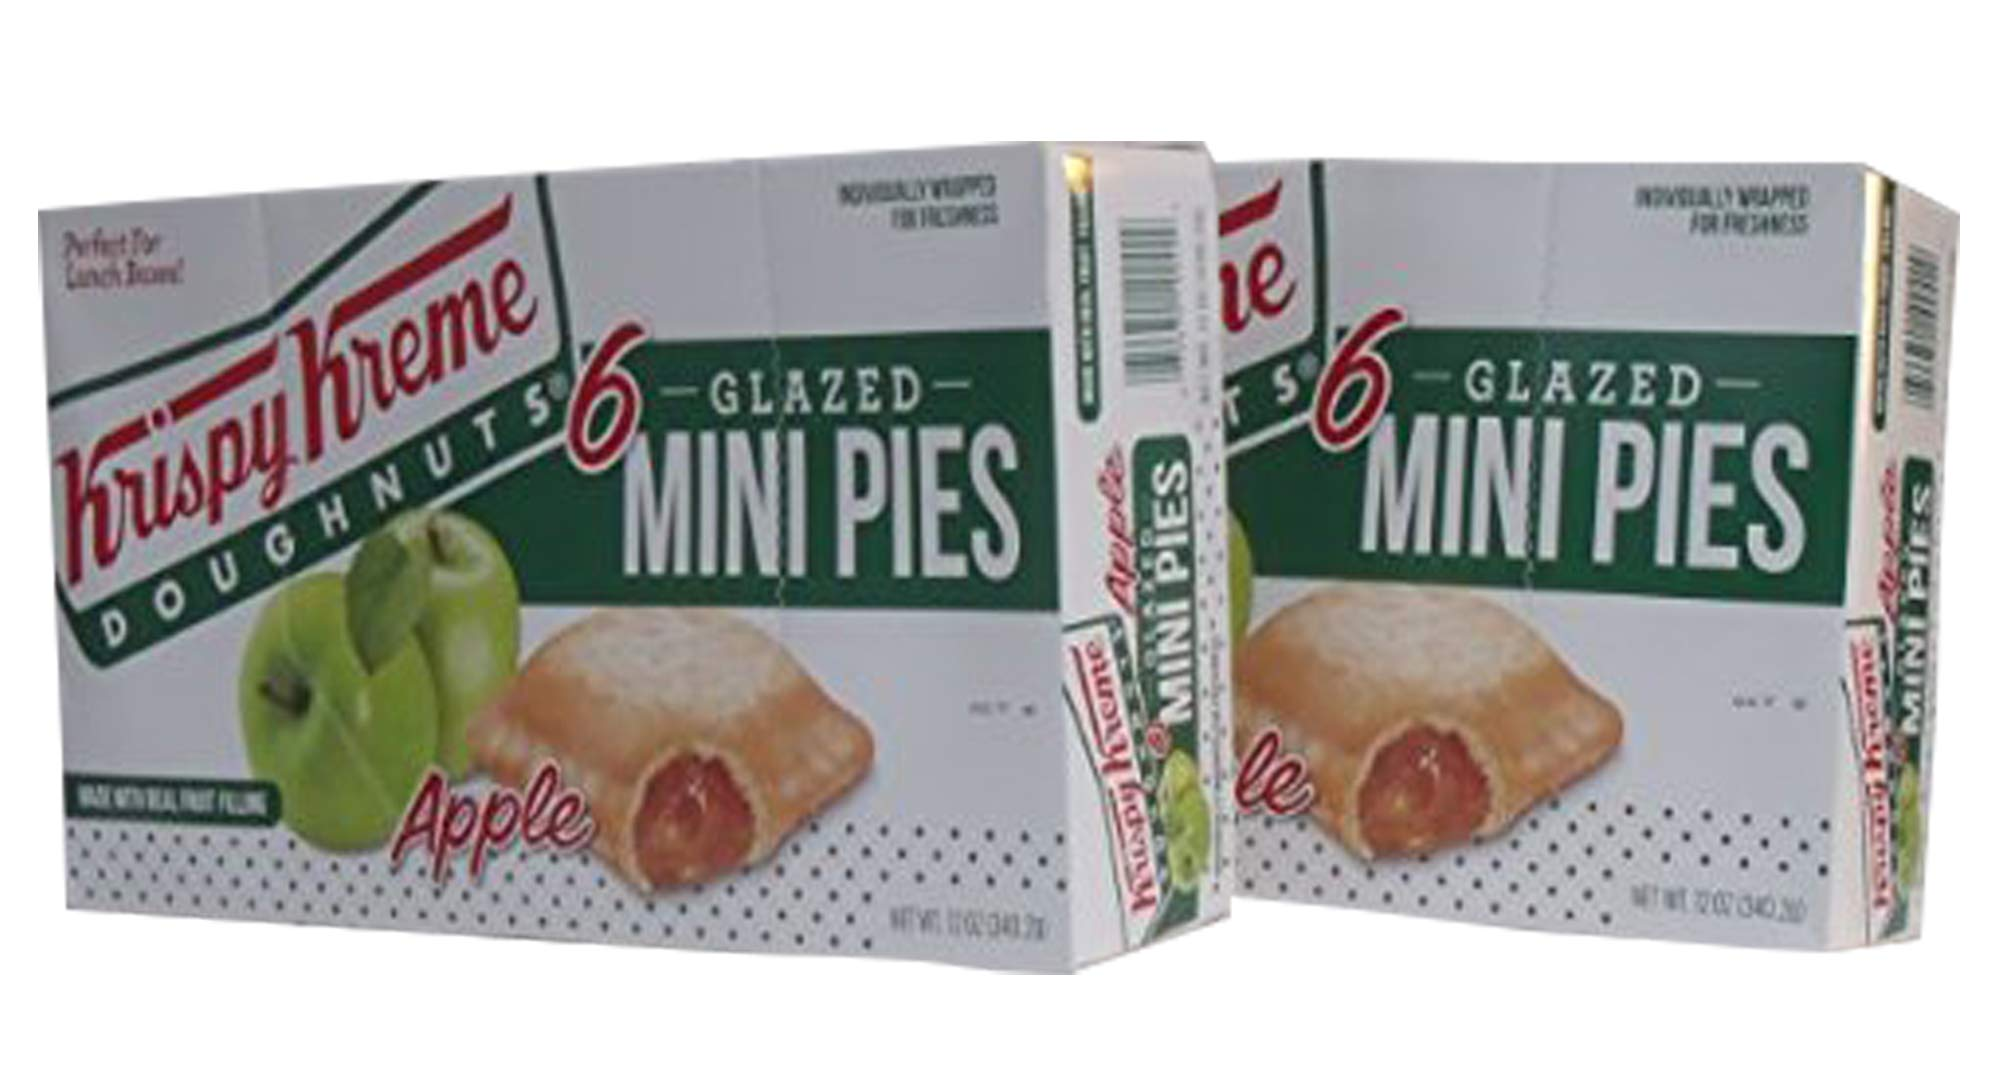 Krispy Kreme Glazed Mini Pies - 6-2 oz Glazed Mini Pies Per Box - Two Boxes: Apple by Krispy Kreme